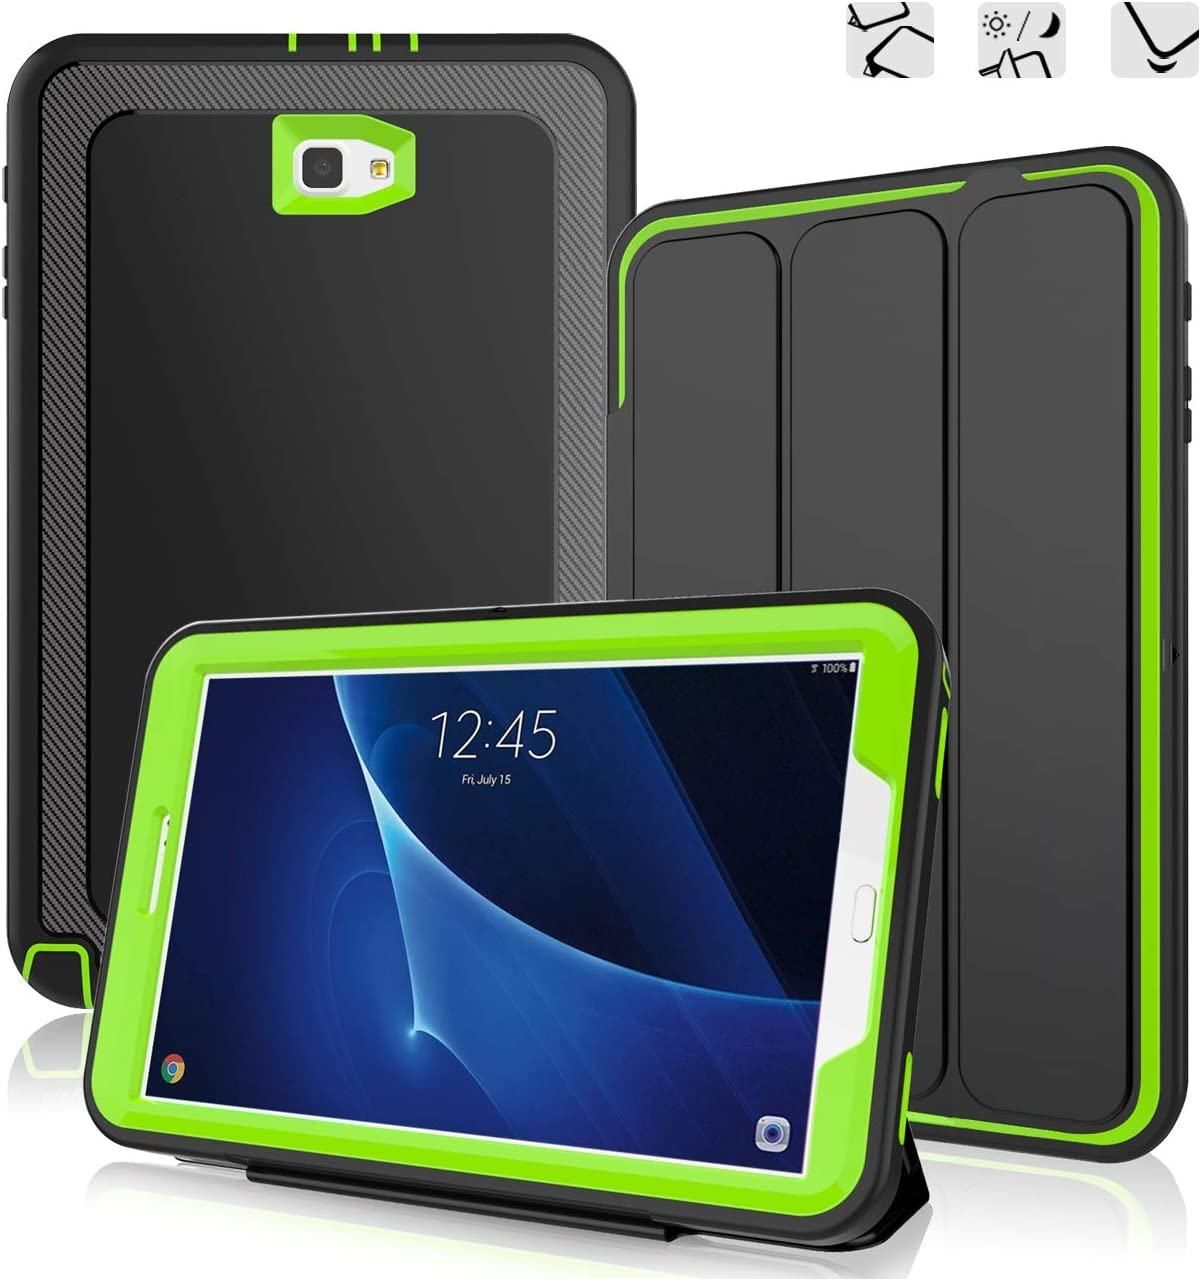 DUNNO Samsung Galaxy Tab A 10.1 Case - Heavy Duty Full Body Rugged Protective Case for Galaxy Tablet SM-T580 T585 T587(NO S Pen Version) with Auto Sleep/Wake Up & Stand Folio Design (Black/Green)